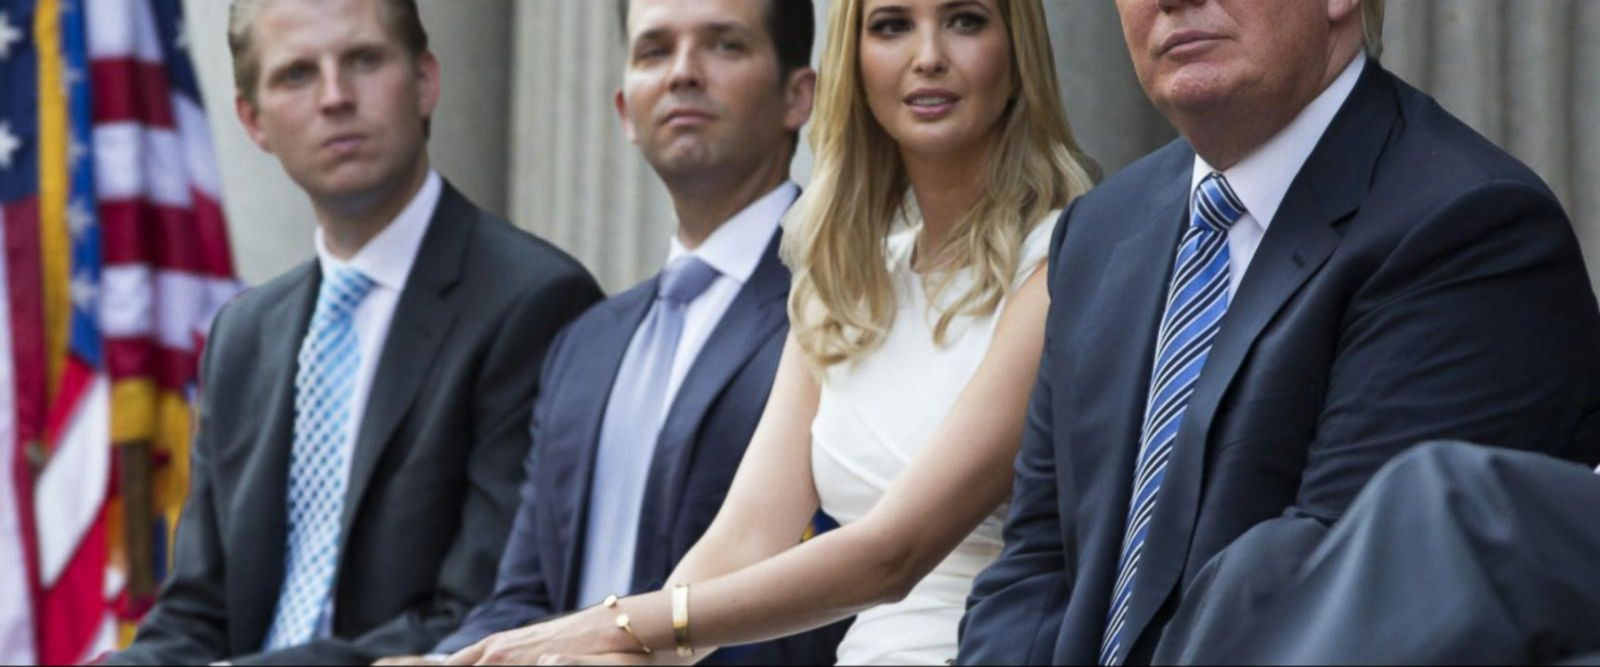 VIDEO: The US Will Soon Welcome a Powerful First Family to Washington DC